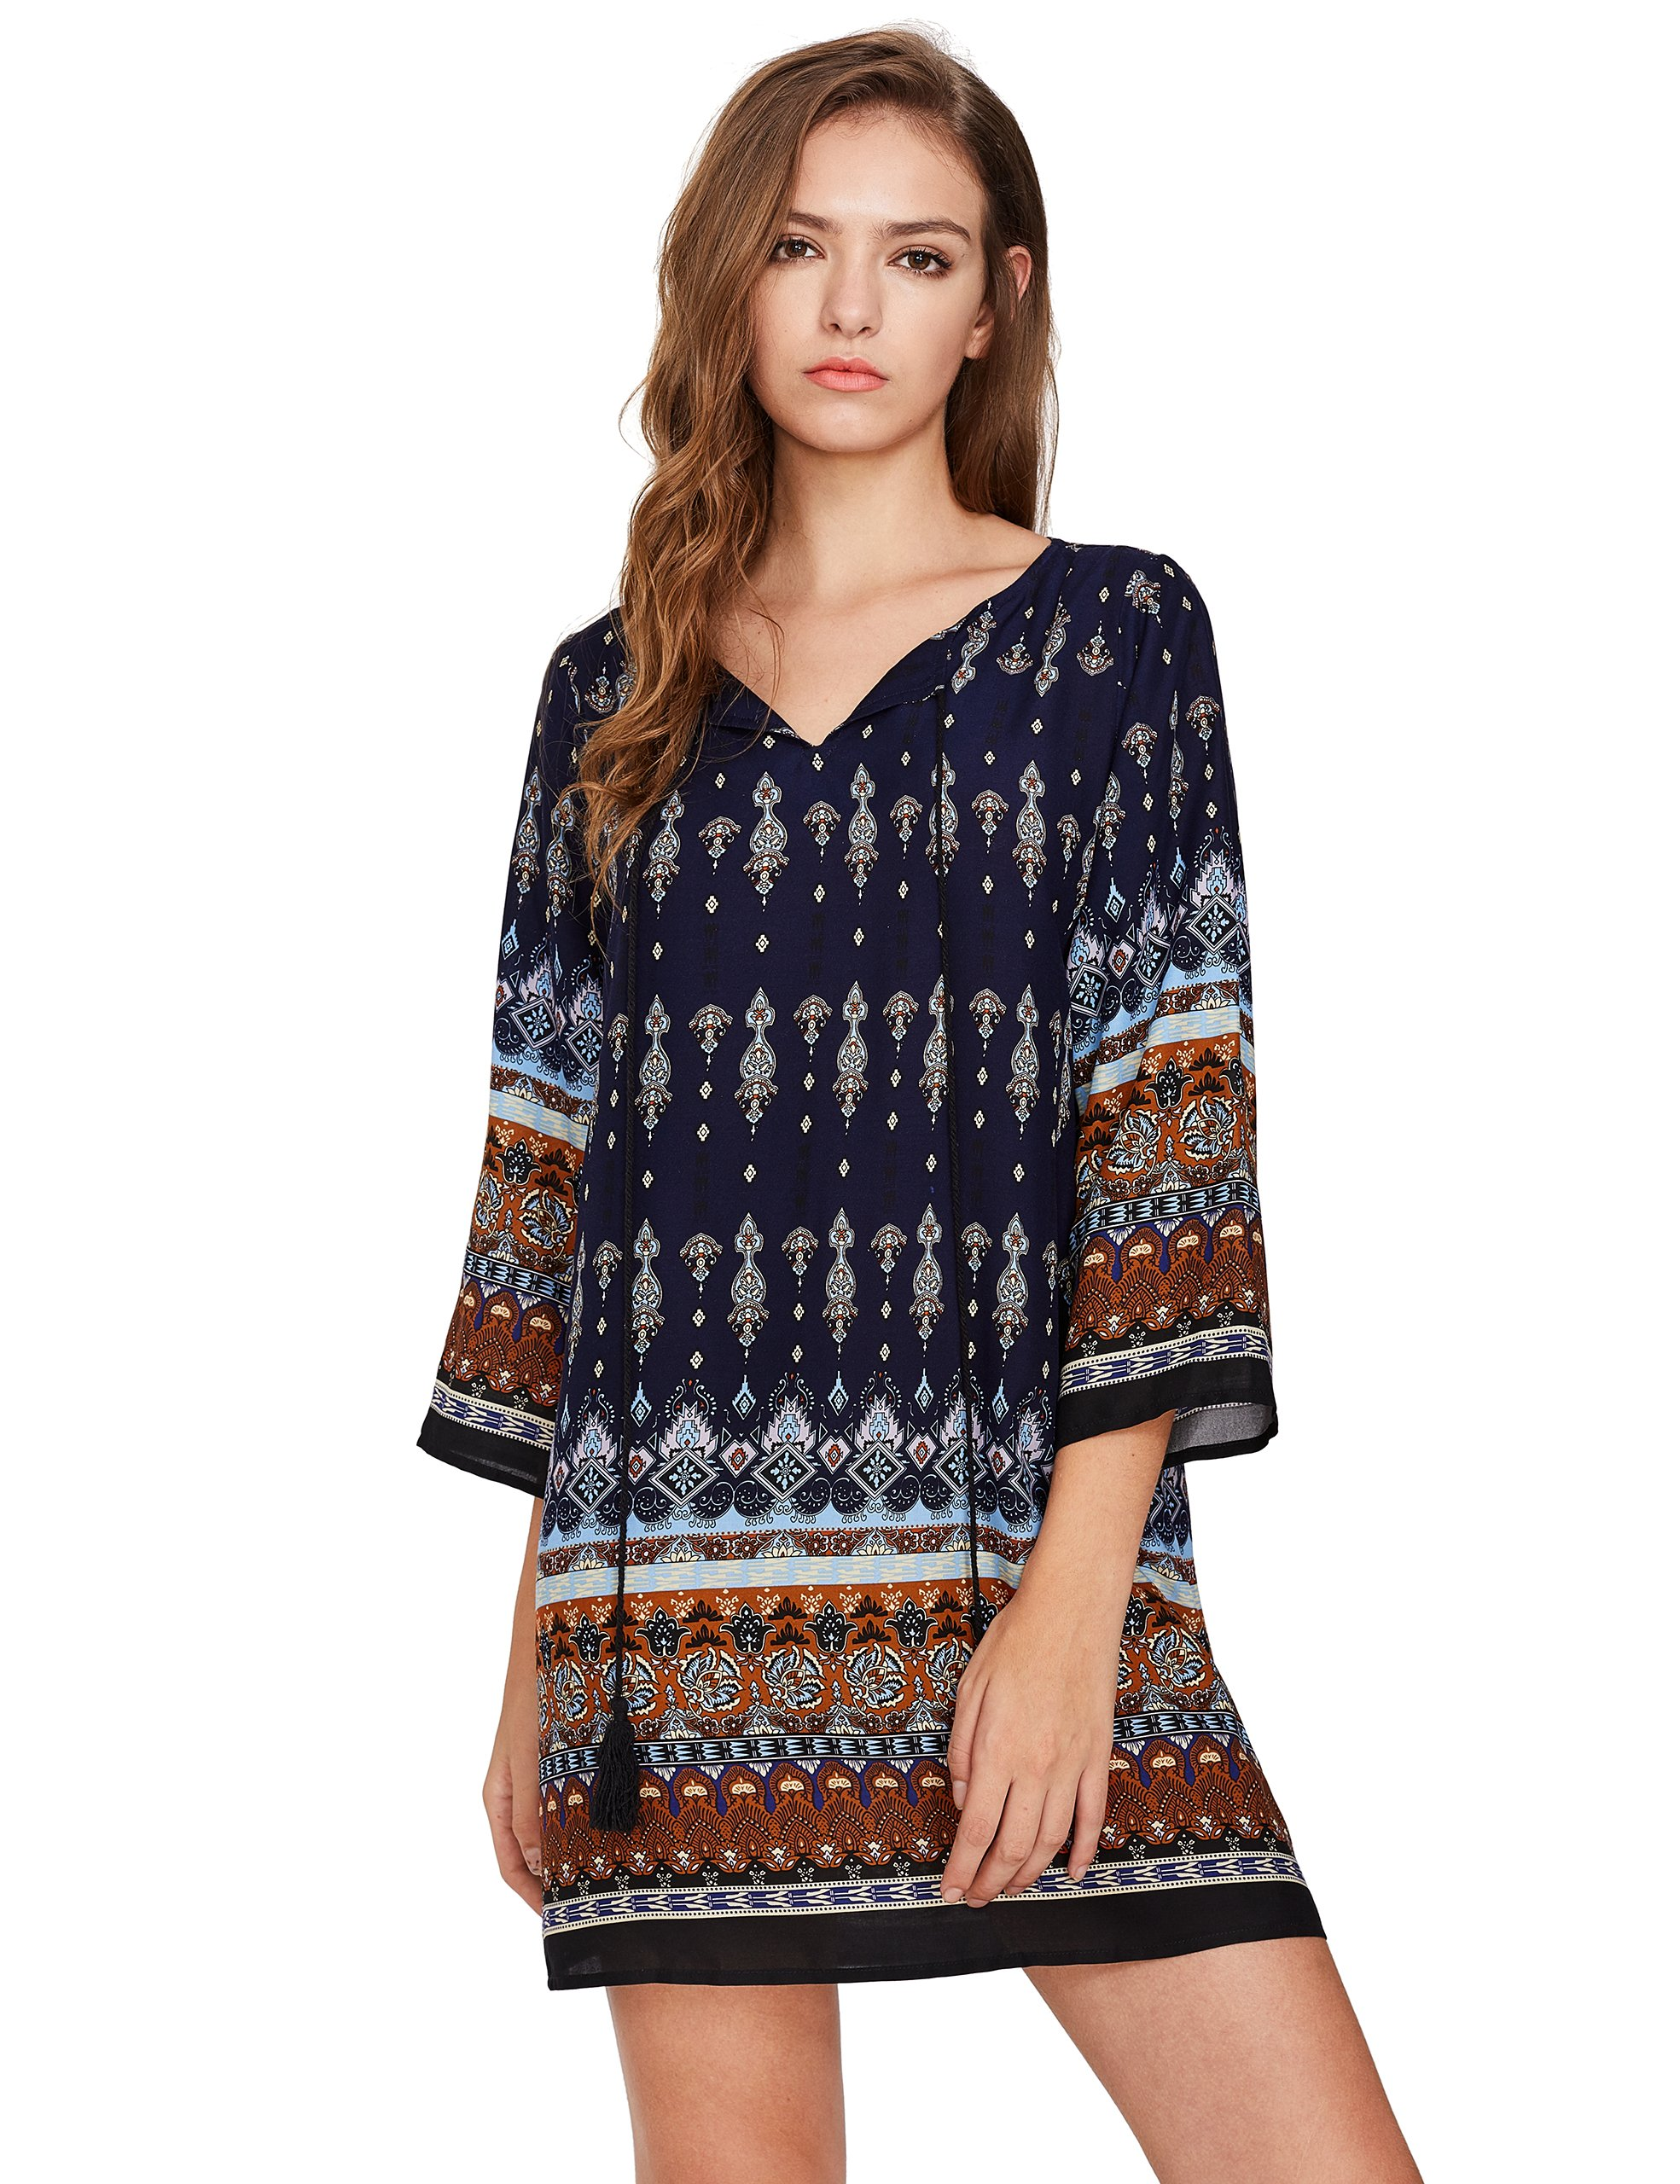 ROMWE Women's Boho Bohemian Tribal Print Summer Beach Dress Navy S by Romwe (Image #1)